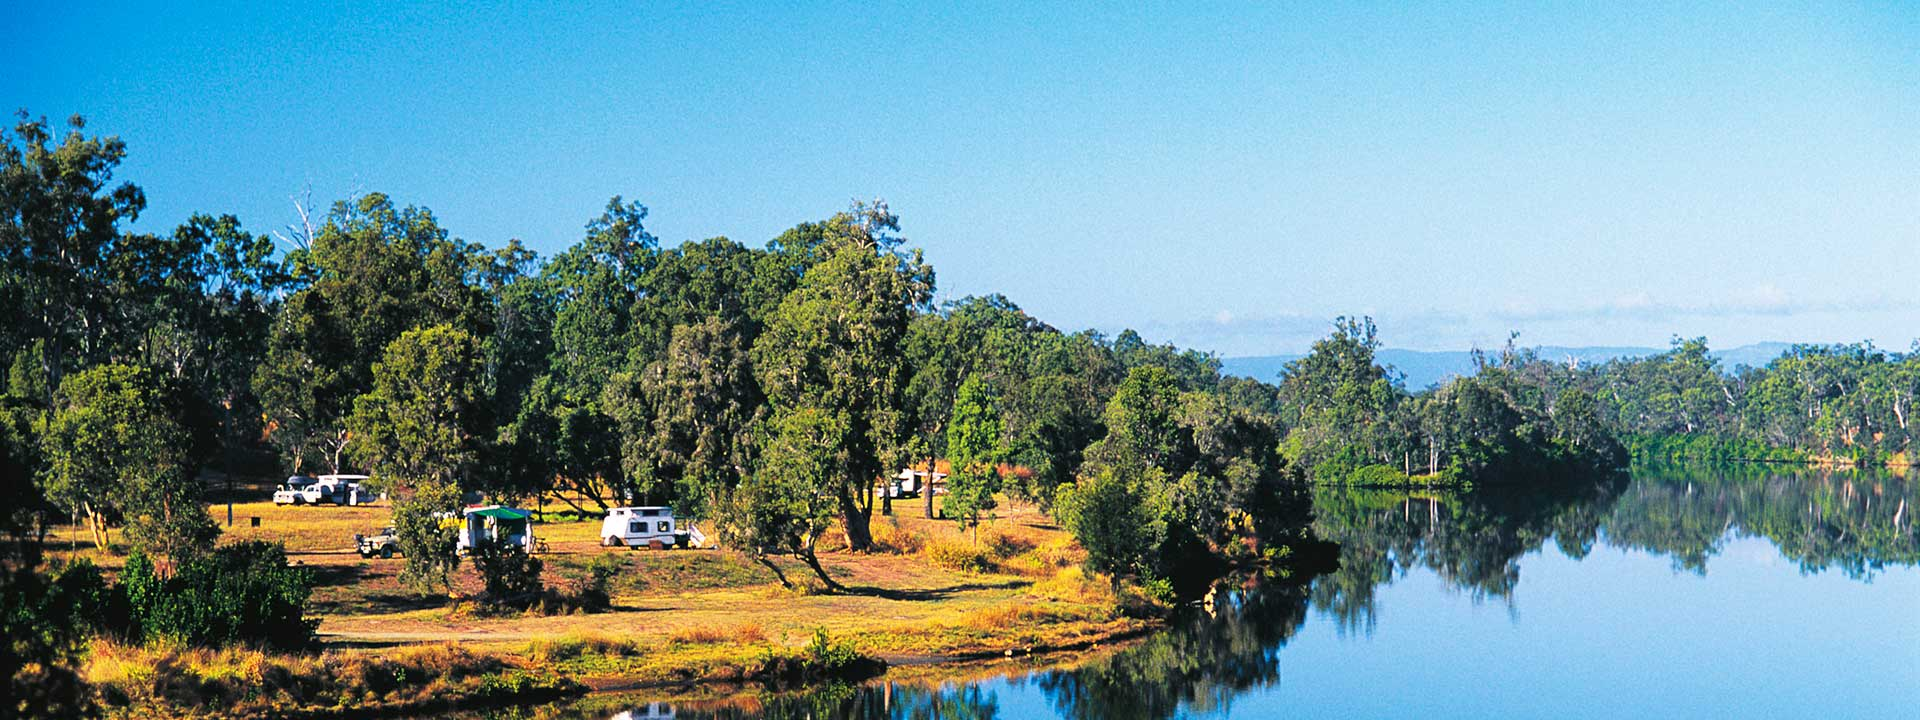 Getaway from the city at the peaceful Calliope River